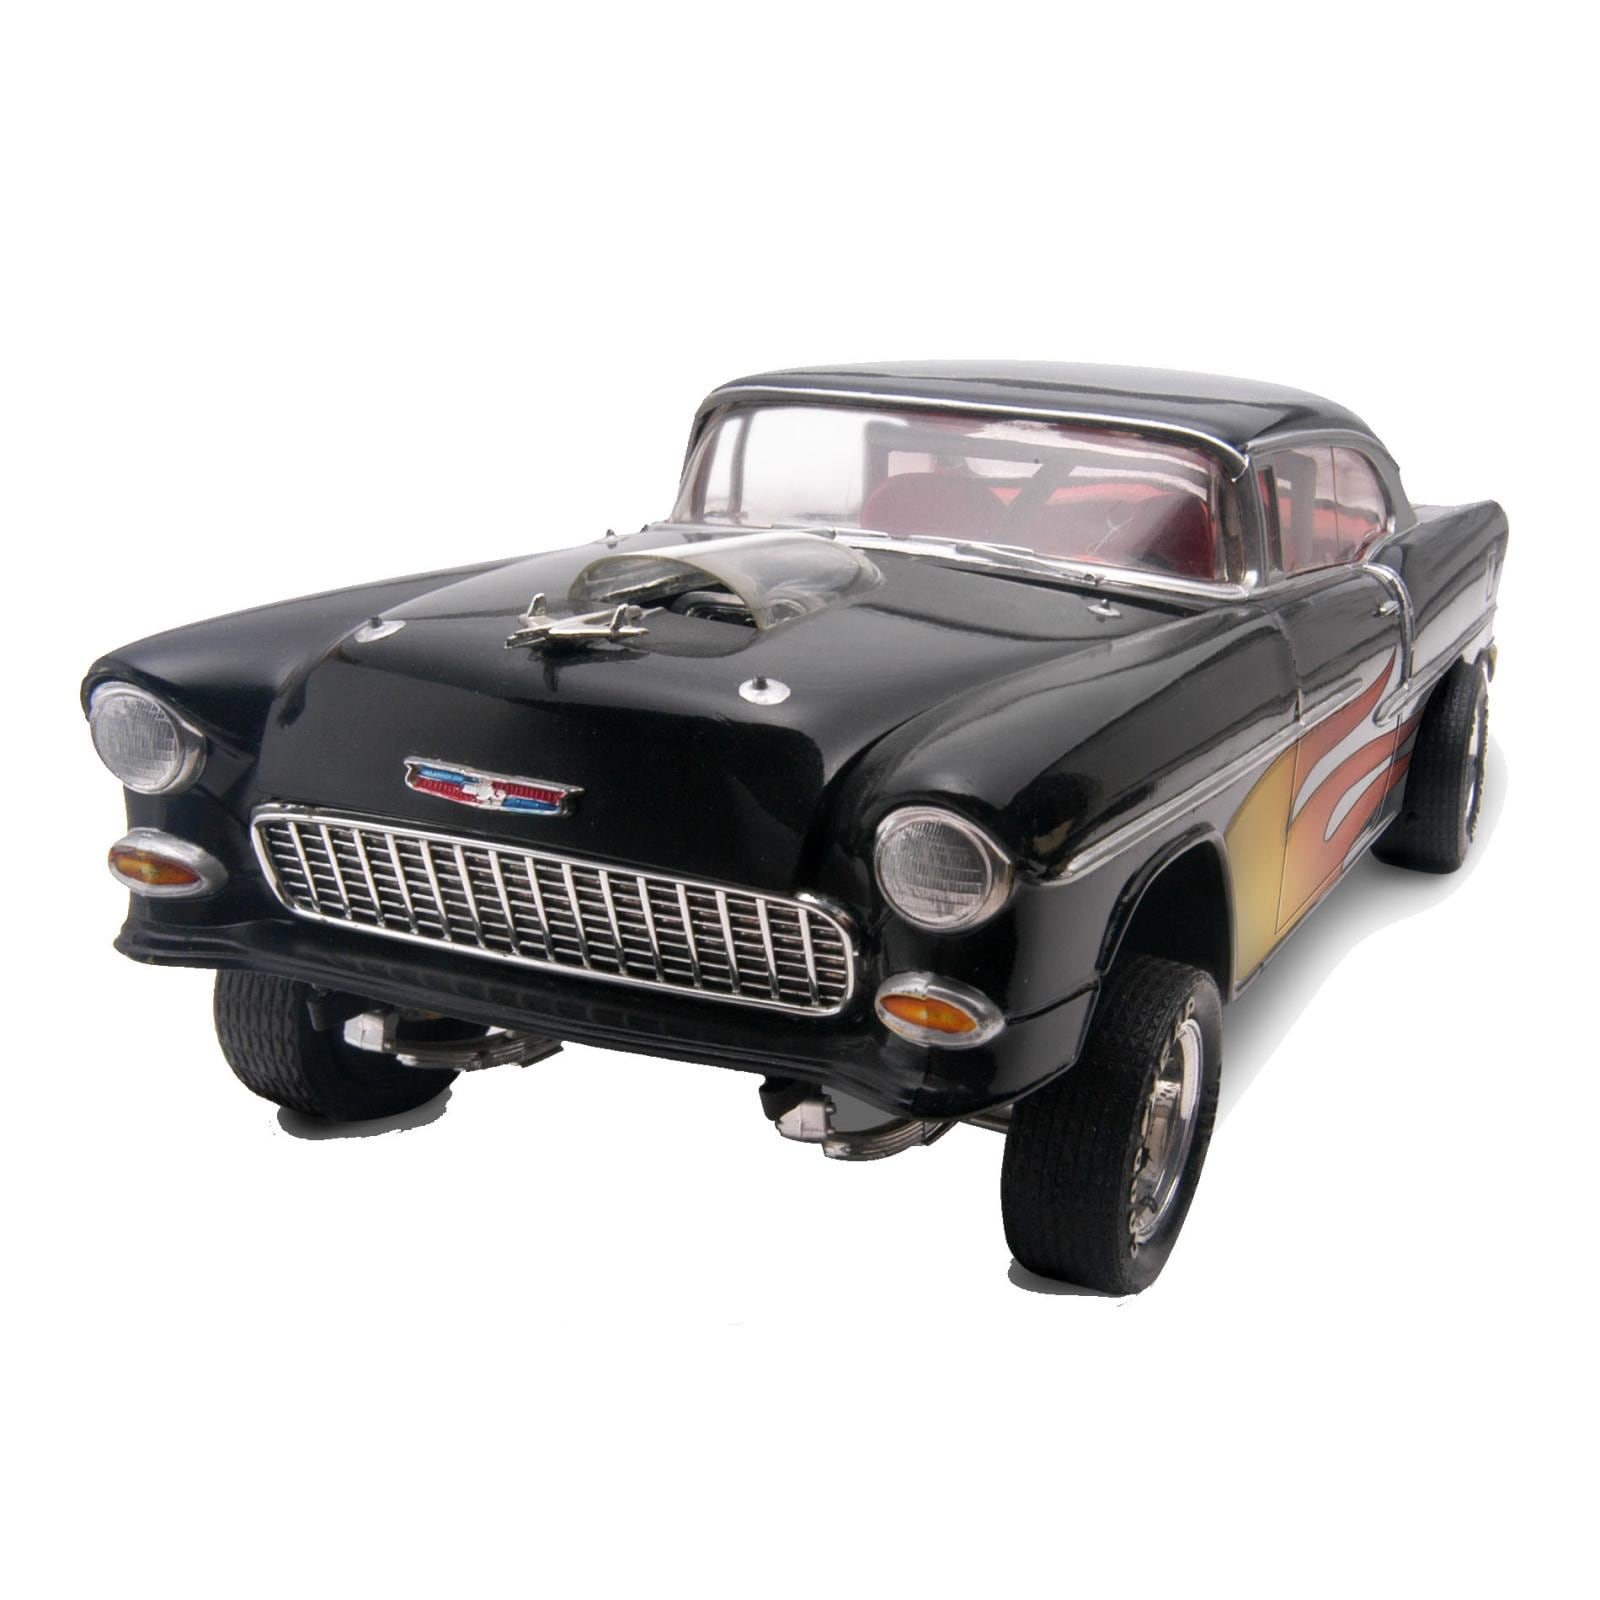 Revell 1:24 Scale 1955 Chevy Street Machine Plastic Model Kit